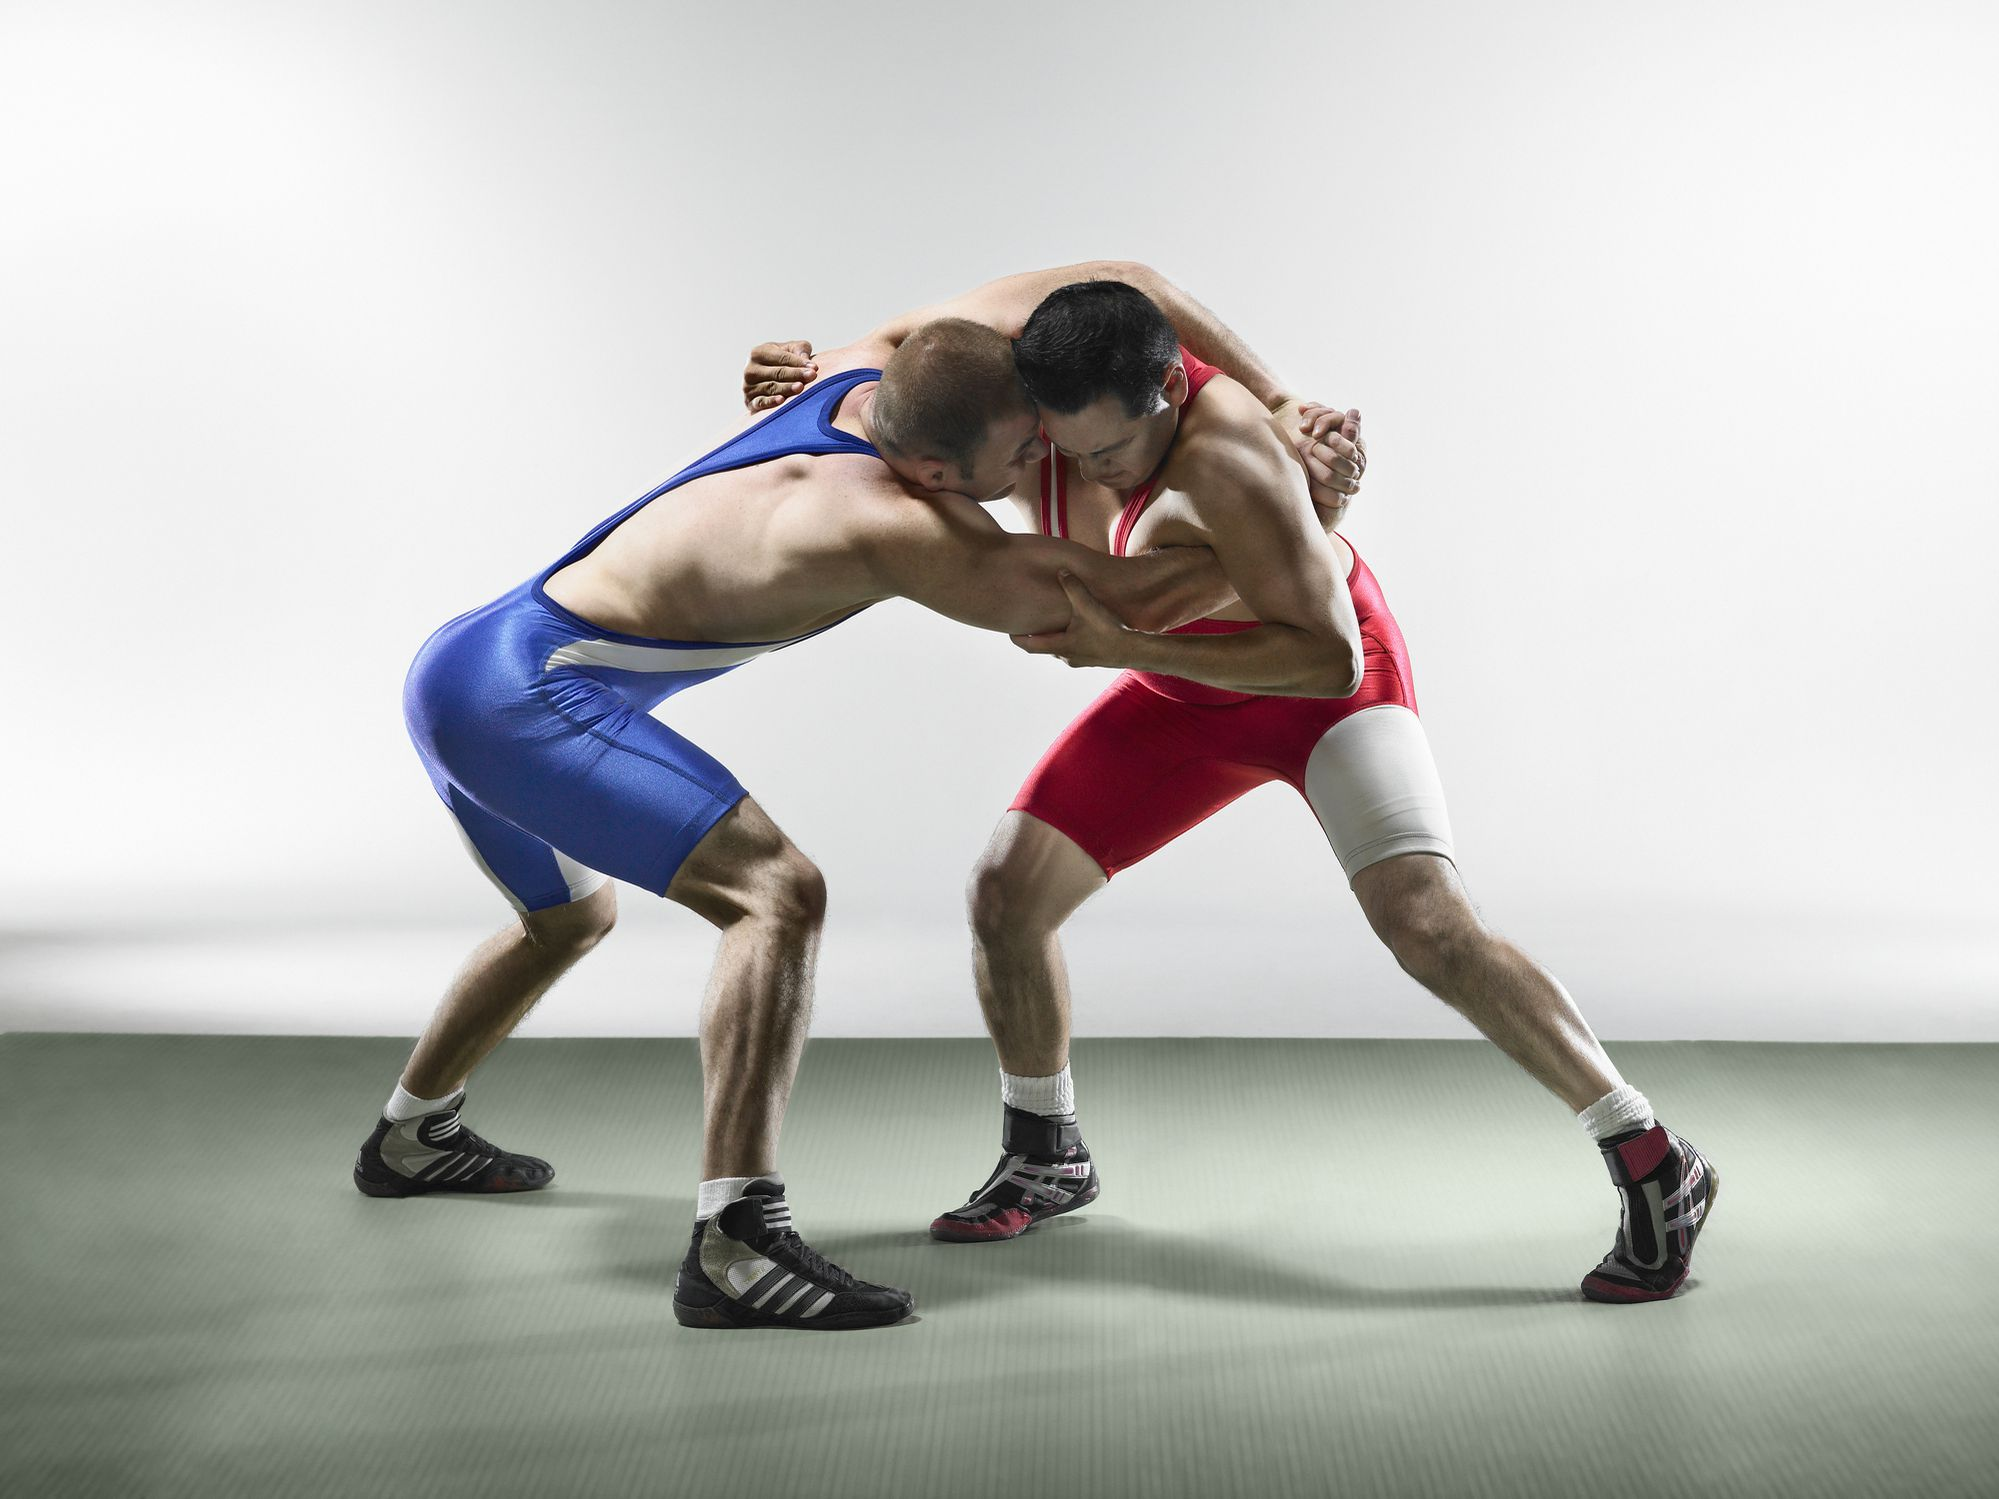 Common Wrestling Aches, Pains and Injuries